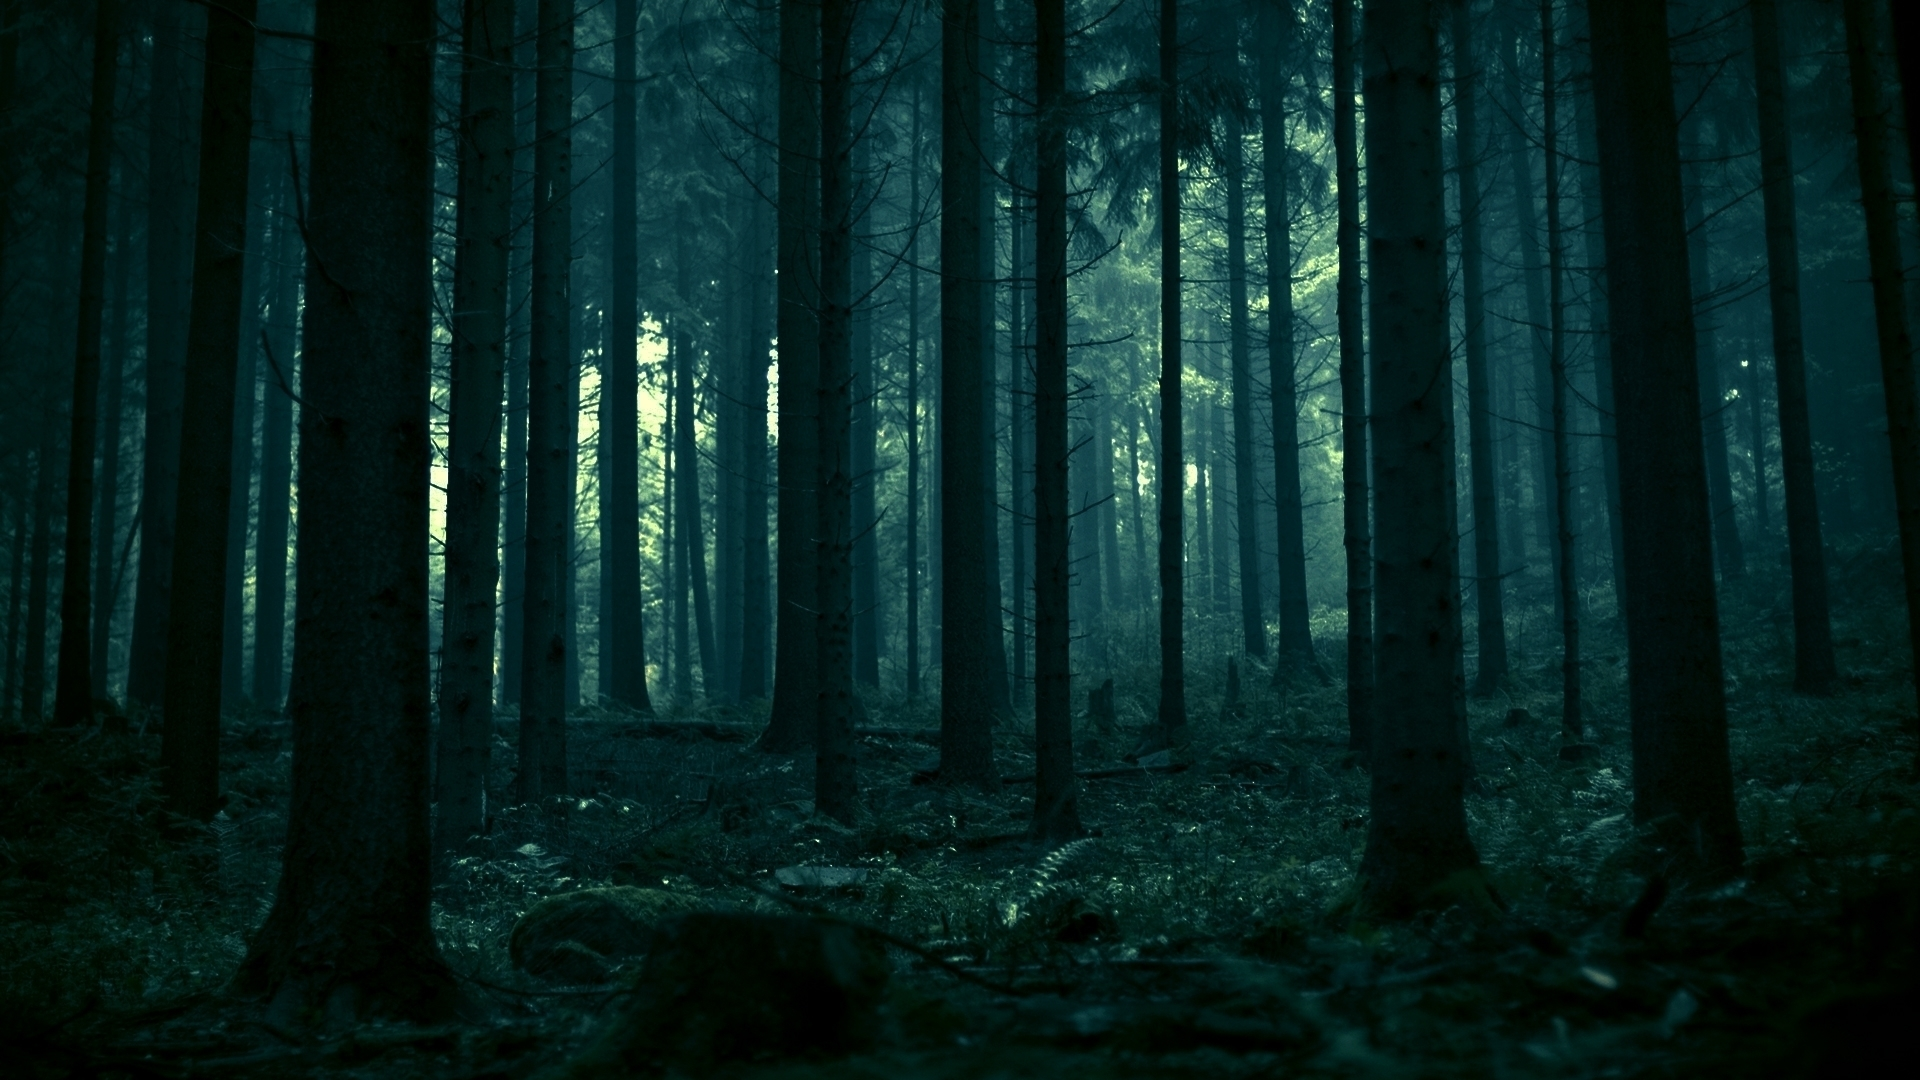 night forest wallpaper cool